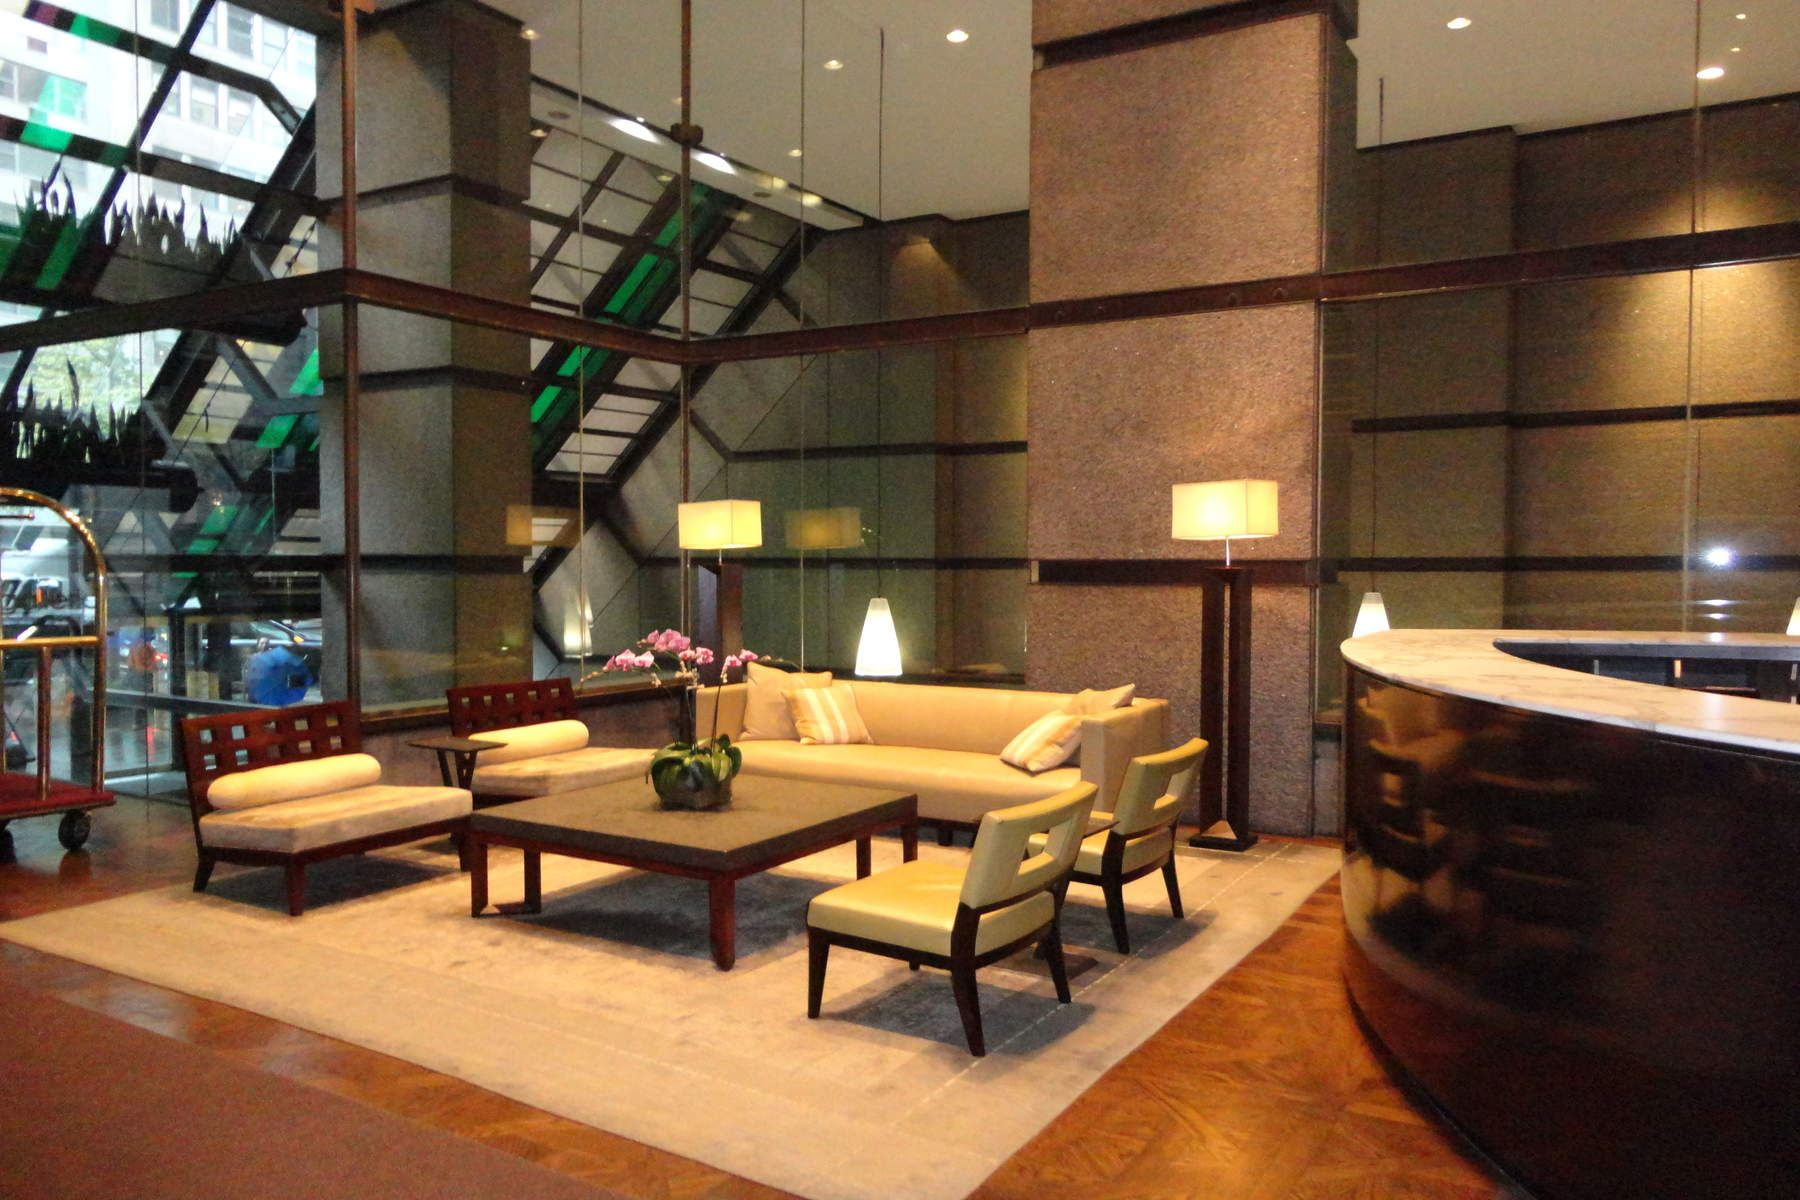 Martine Capdevielle_Luxury Real Estate NYC_117 EAST 57TH STREET APT 34h2.jpg